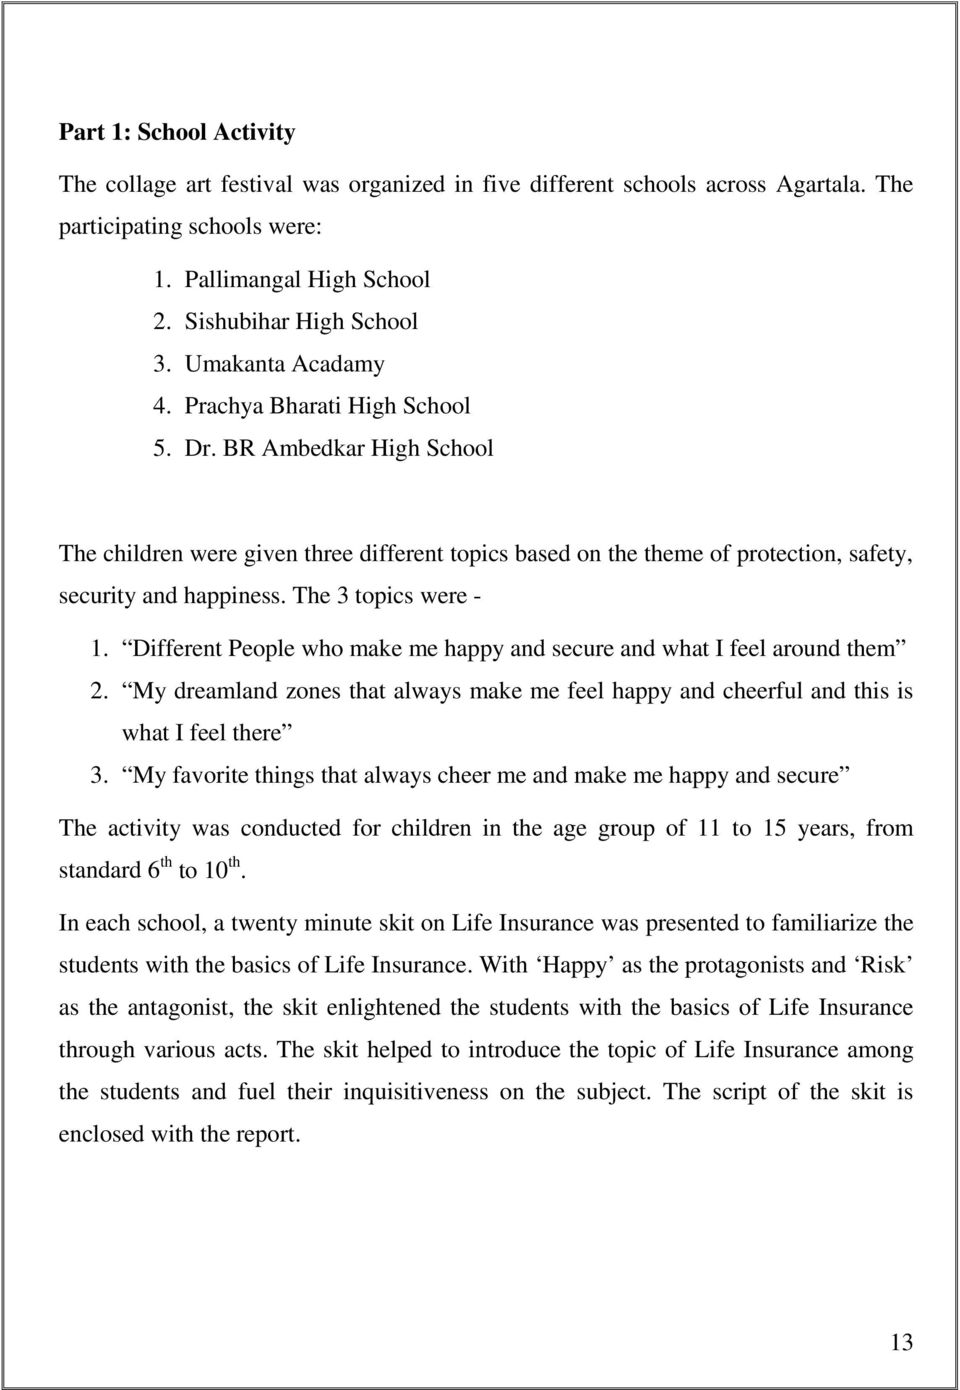 essay about theatres natural disaster upsr